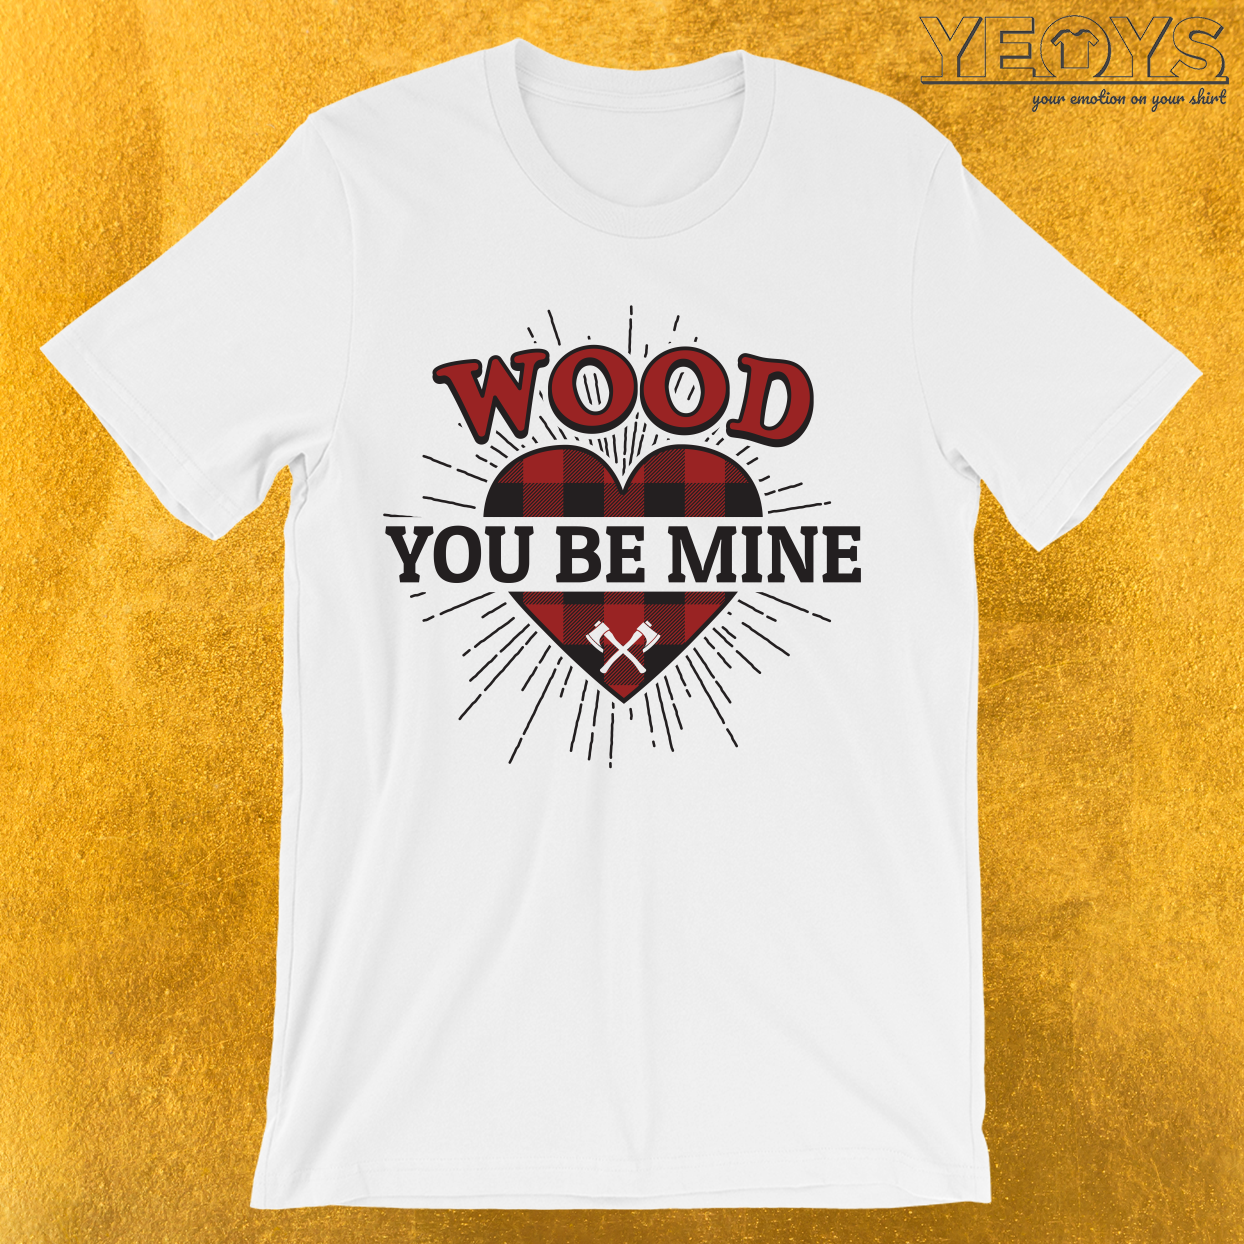 Wood You Be Mine T-Shirt